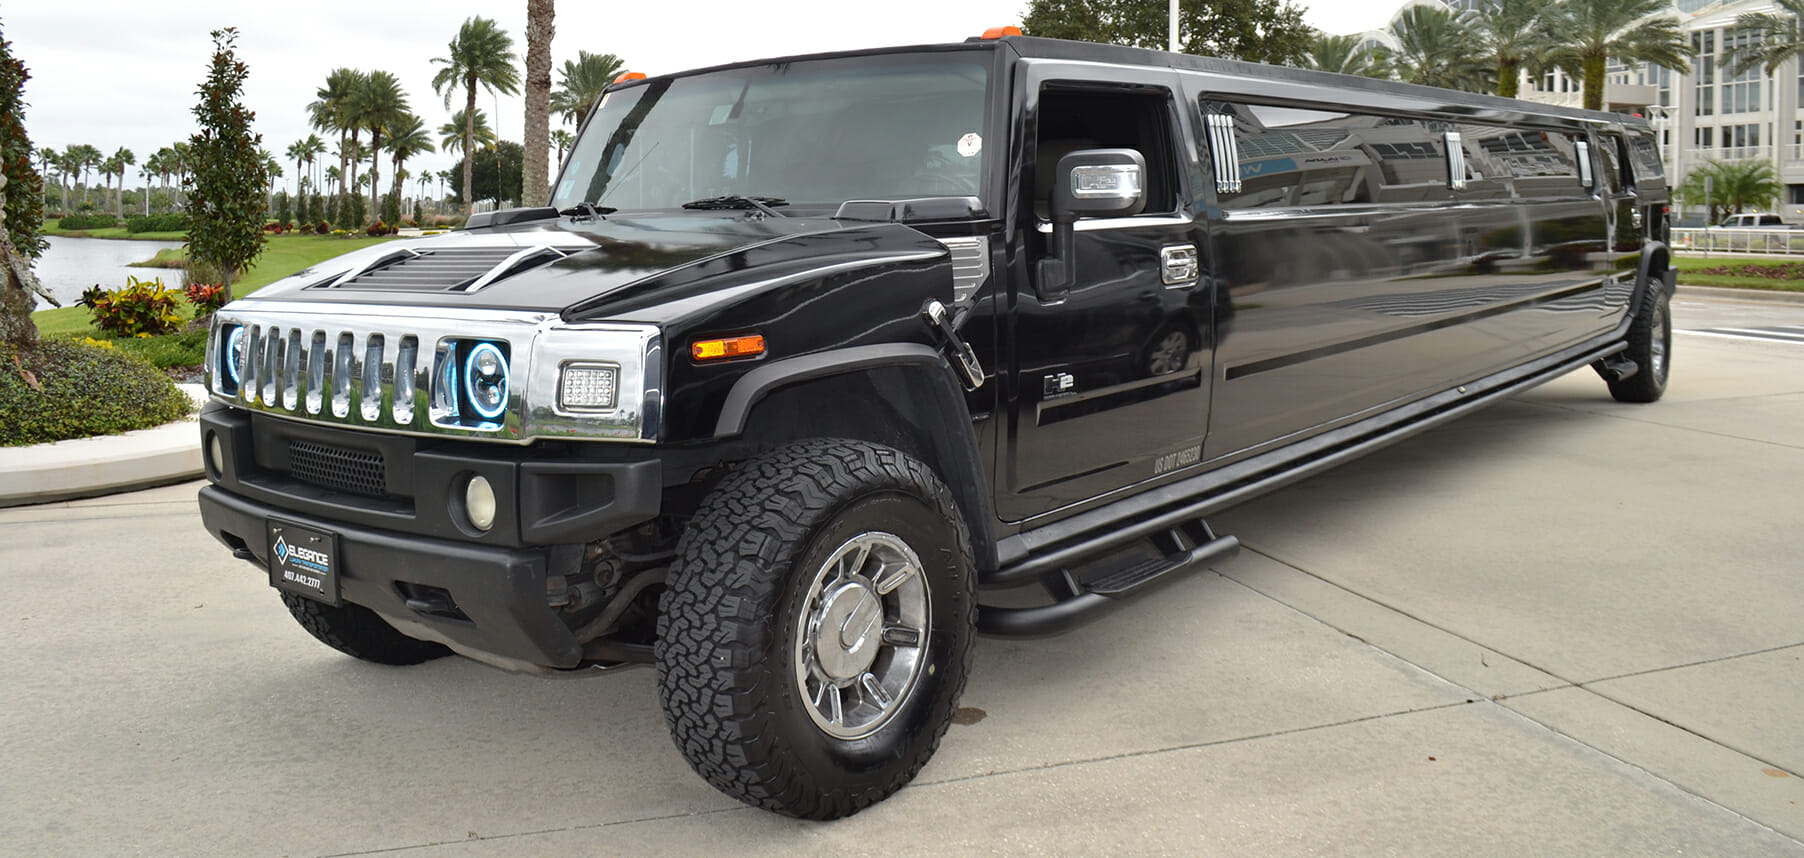 Hummer Limo Exterior